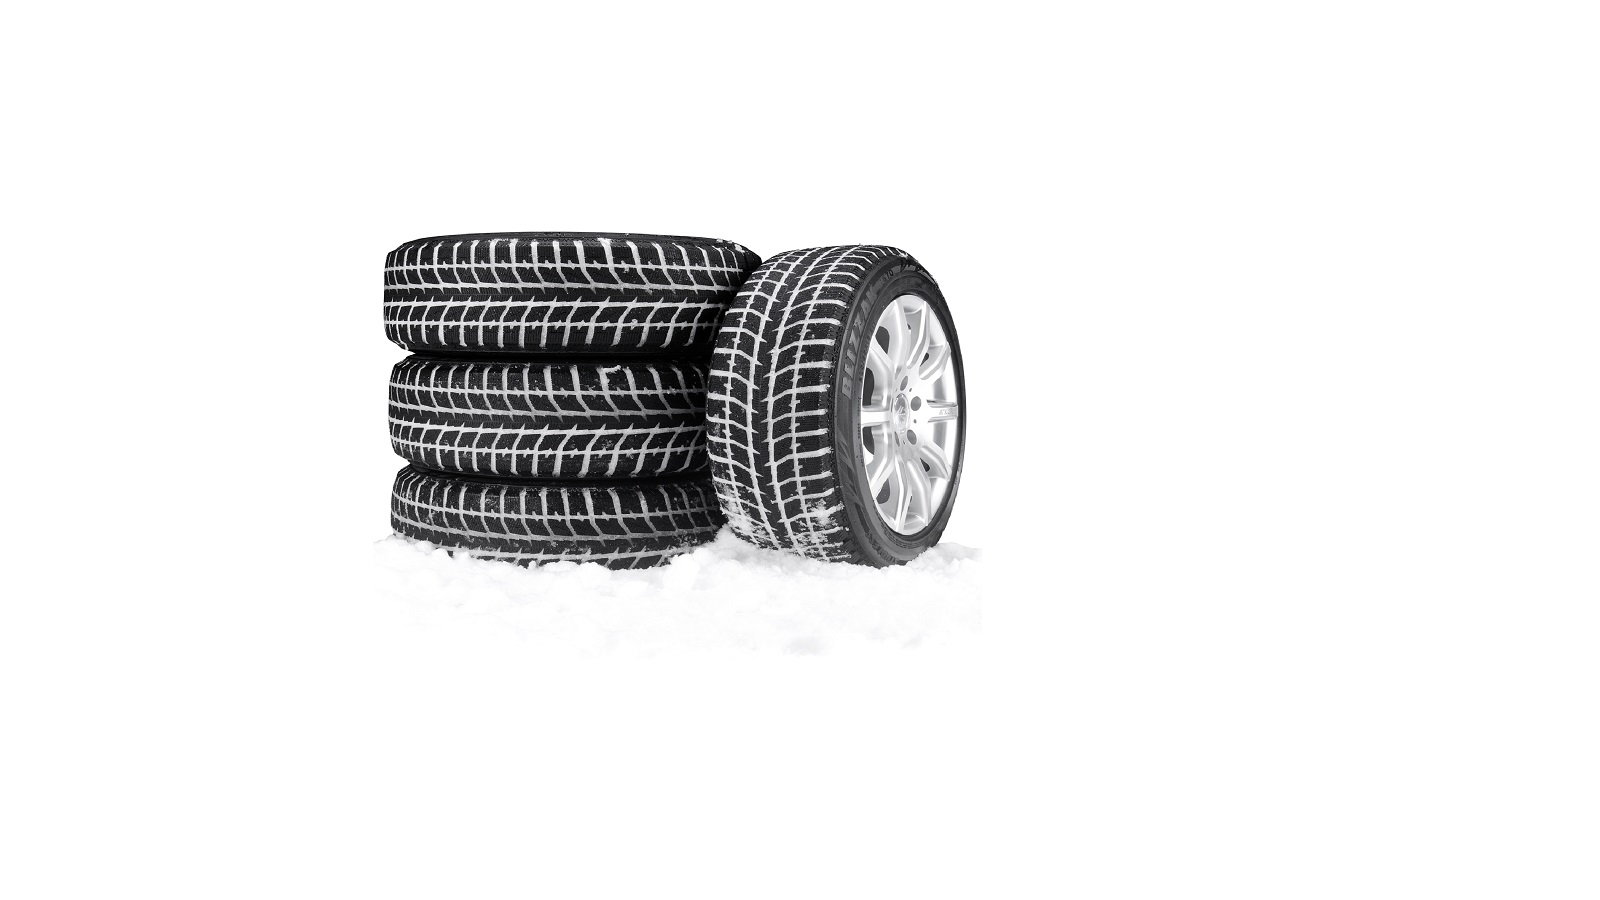 Winter Tires Use a Different Type of Rubber